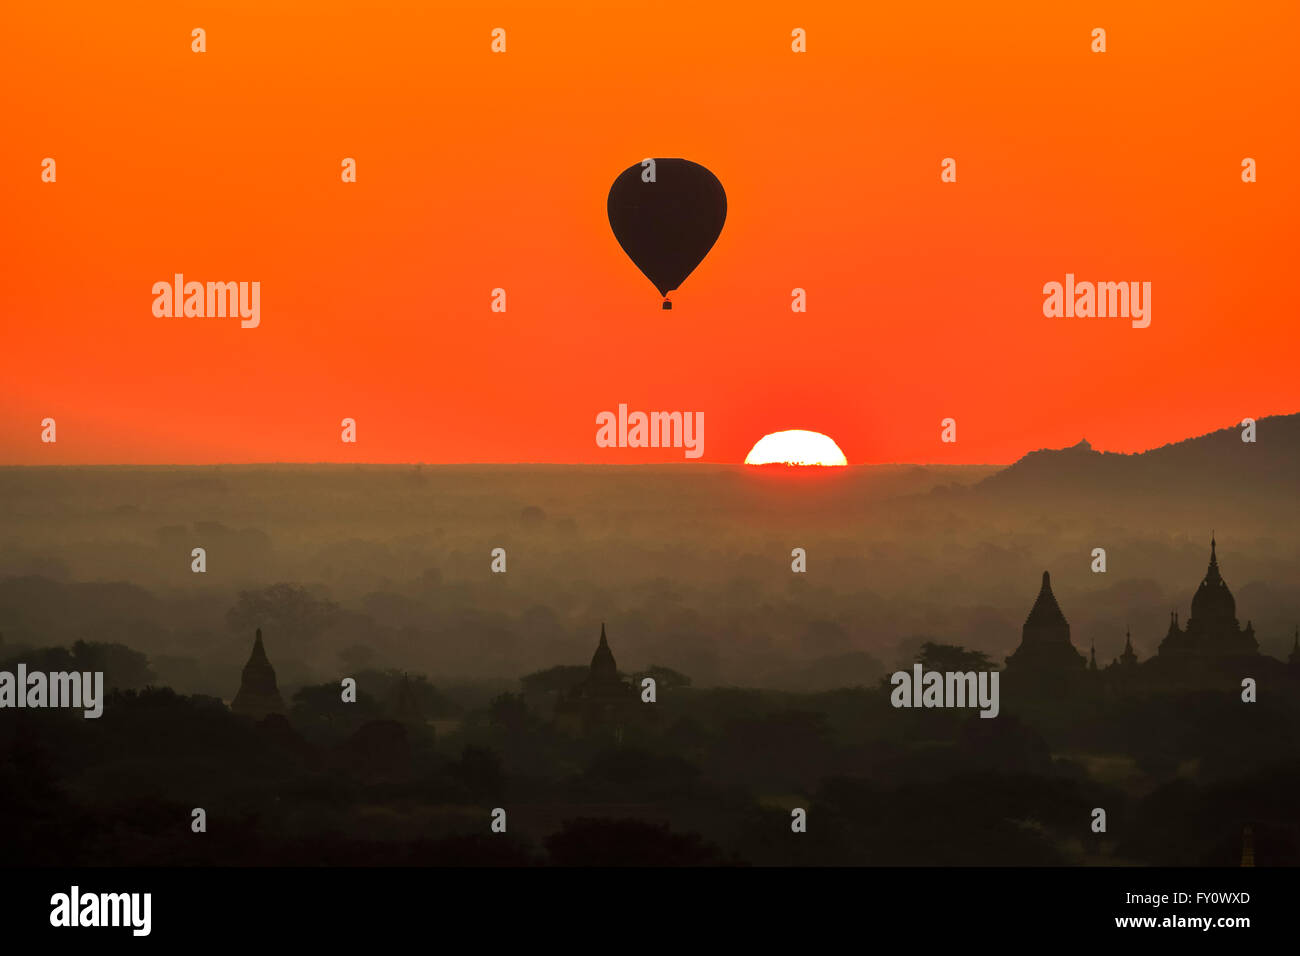 Sun rising over the horizon and hot air balloon flying at Old Bagan with orange sky and temple silhouettes, Myanmar Stock Photo